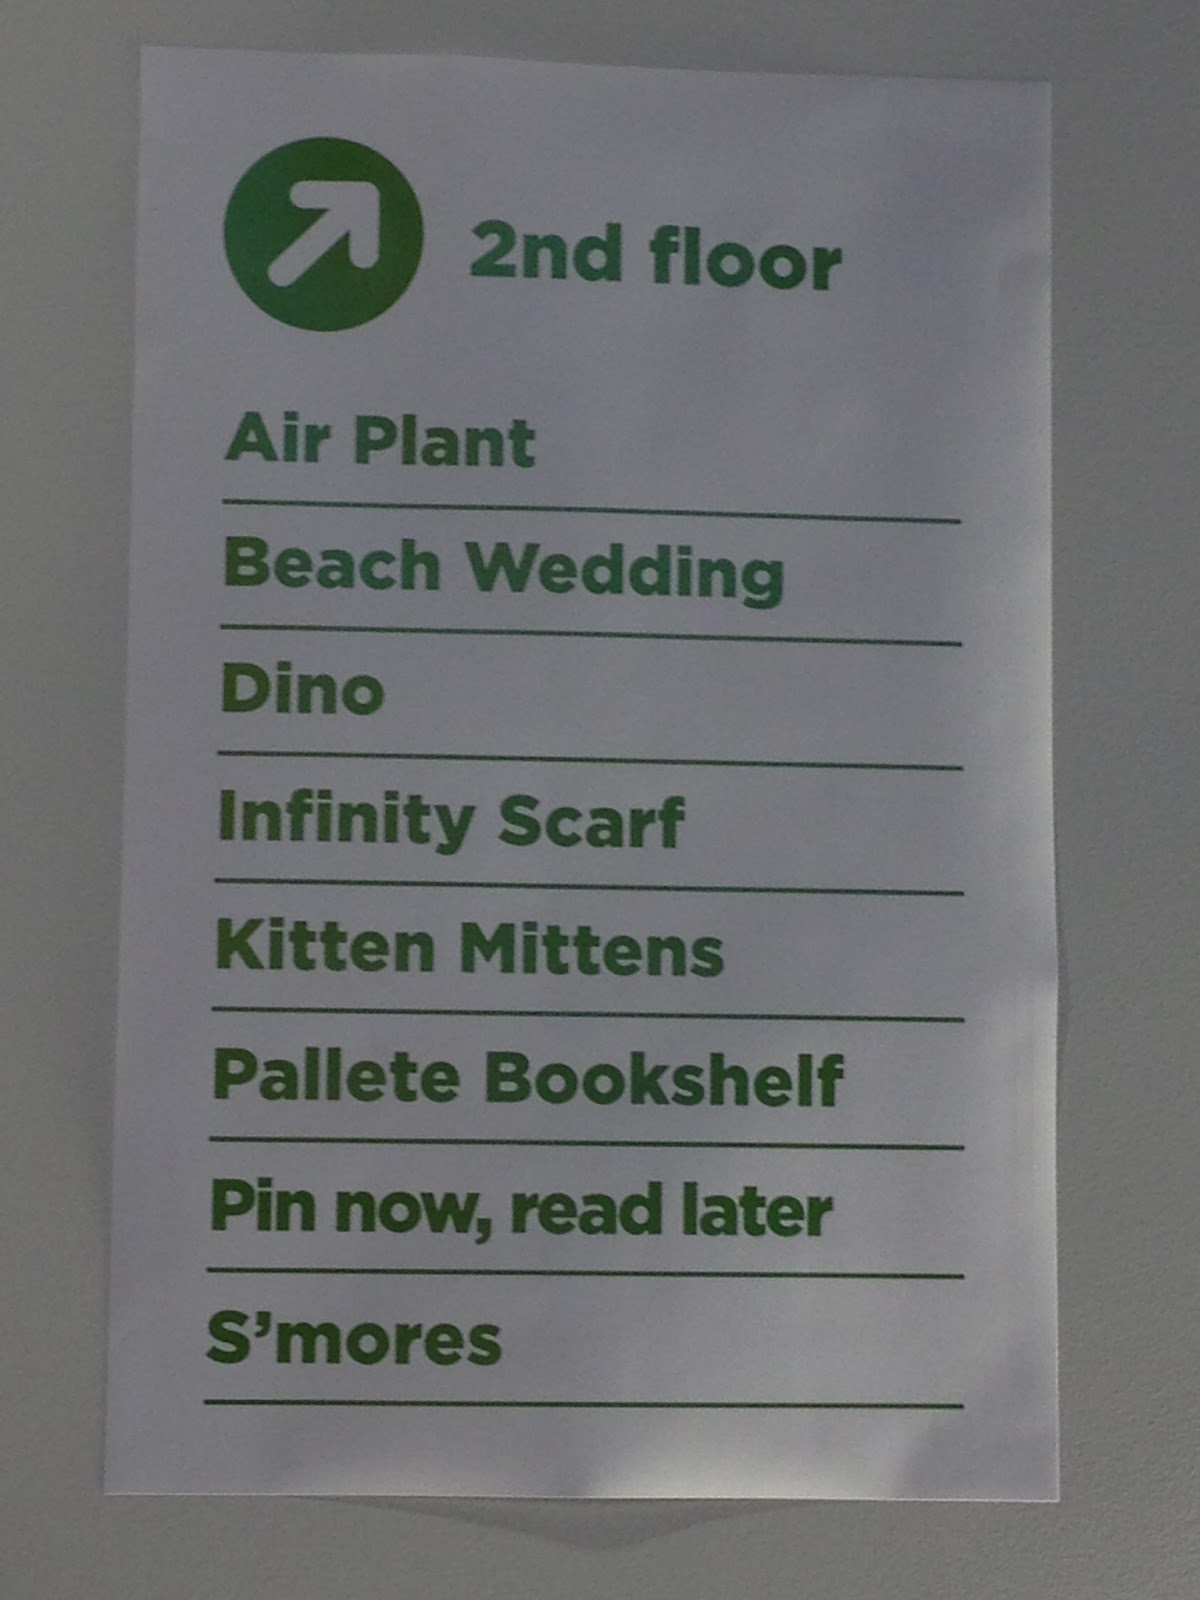 Conference Room Names at Pinterest